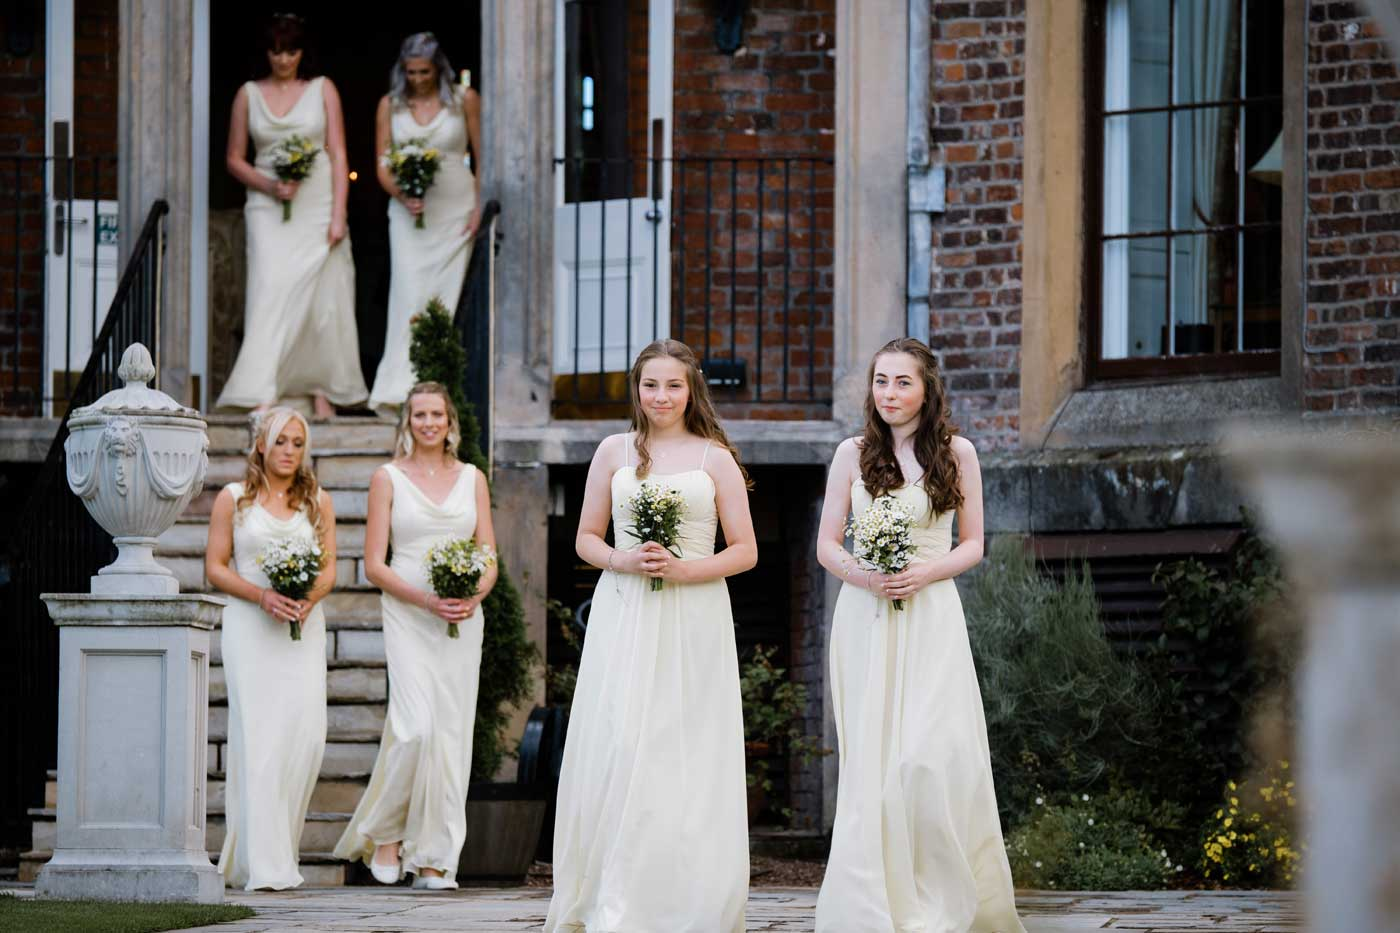 Maids arriving for the outdoor wedding ceremony at The Linden Belvedere at Rowton Castle by Rowton Castle wedding photographer Clive Blair